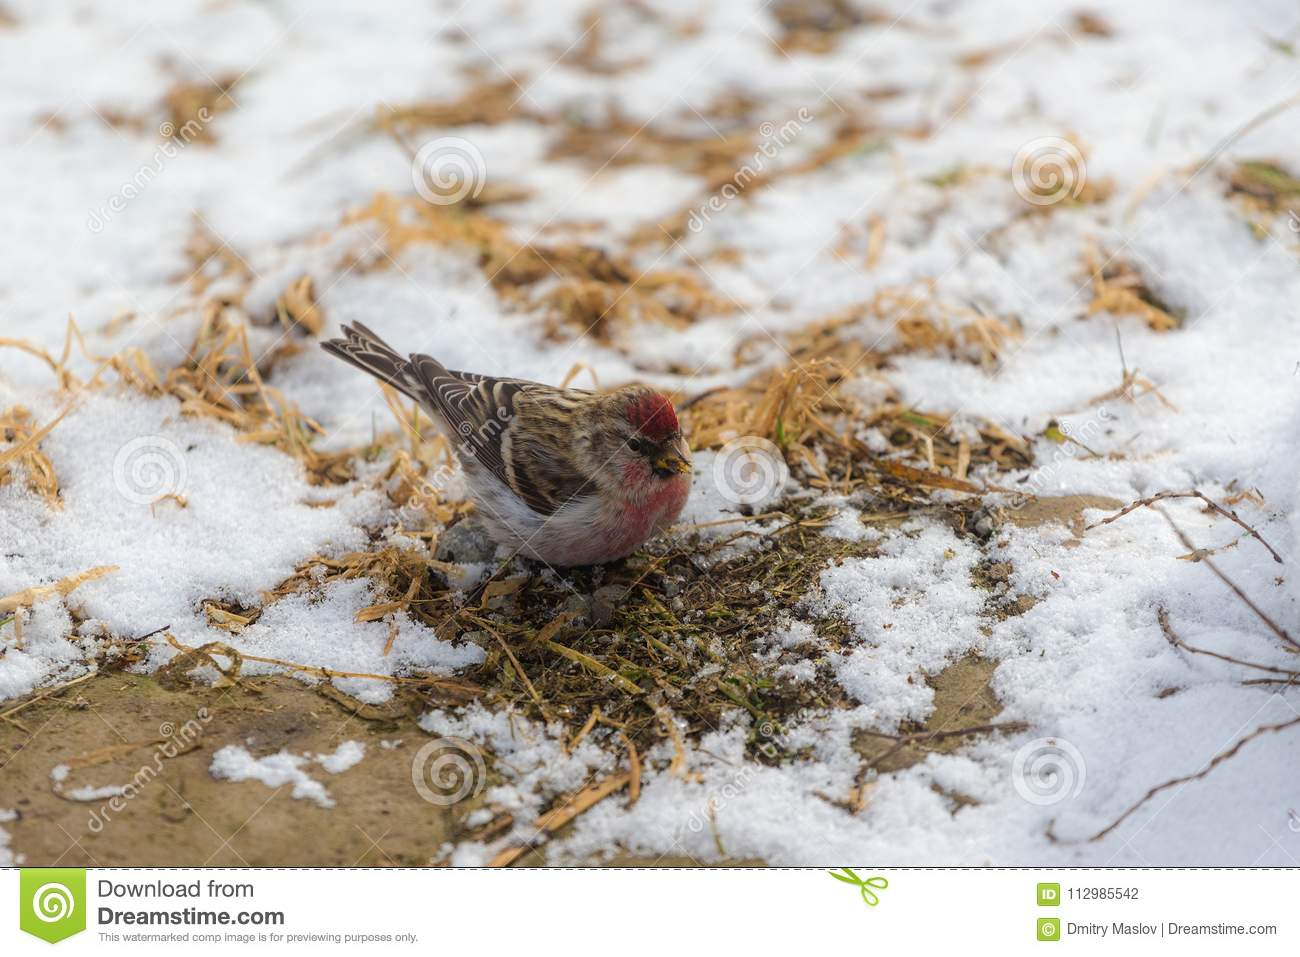 Redpoll searches for food